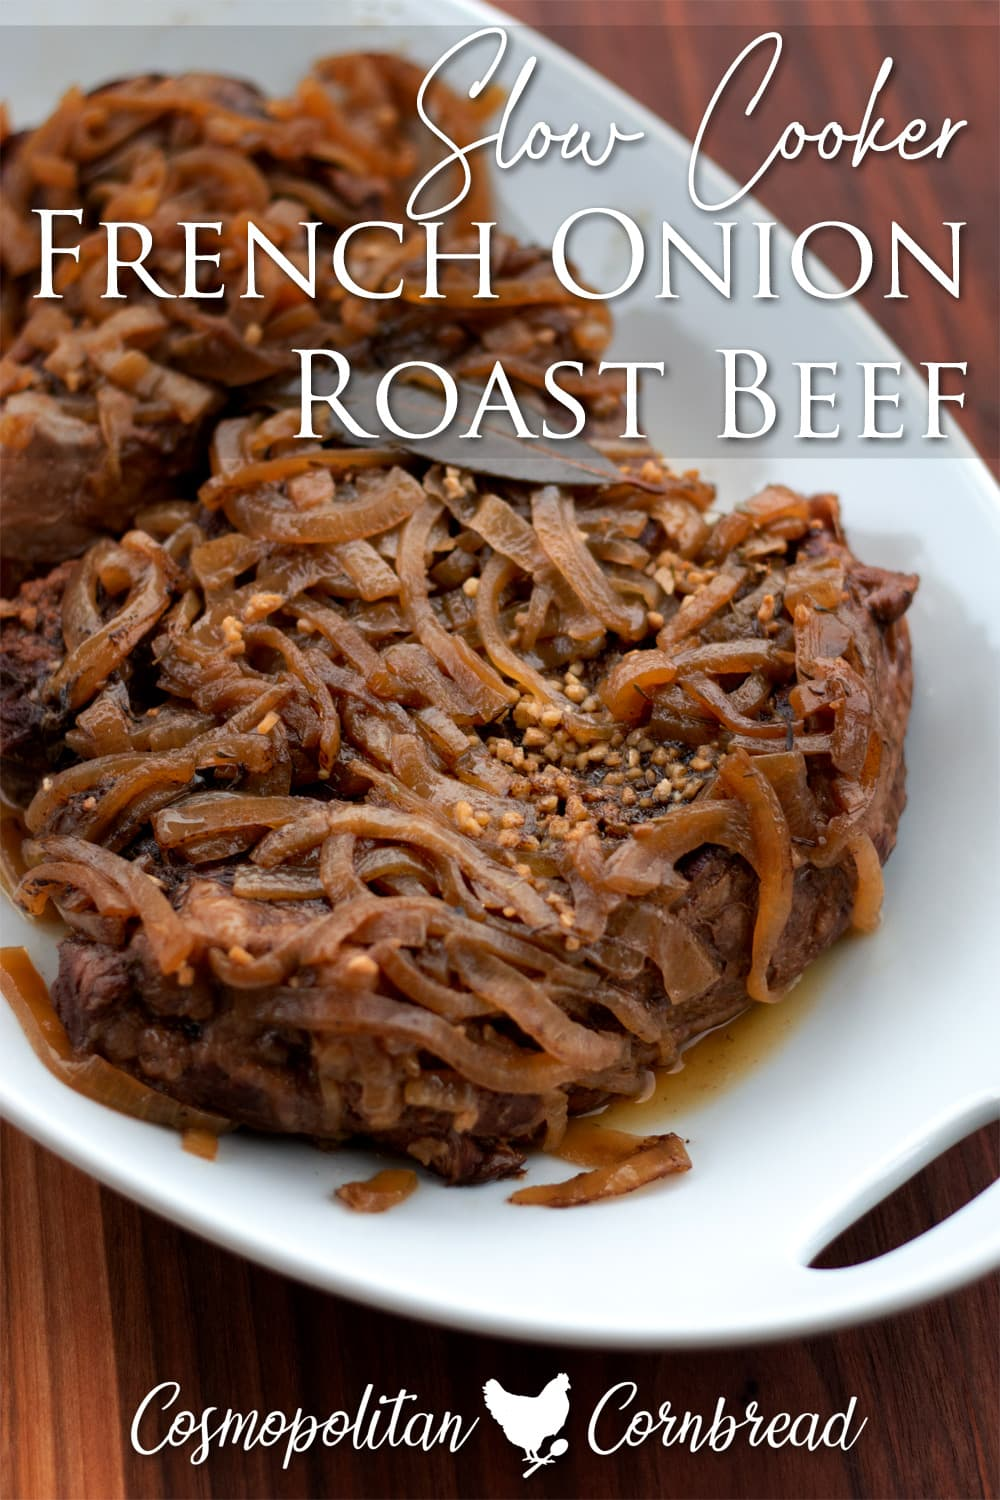 This easy French Onion Roast Beef recipe is fall apart tender, and has all that French onion flavor that you love.